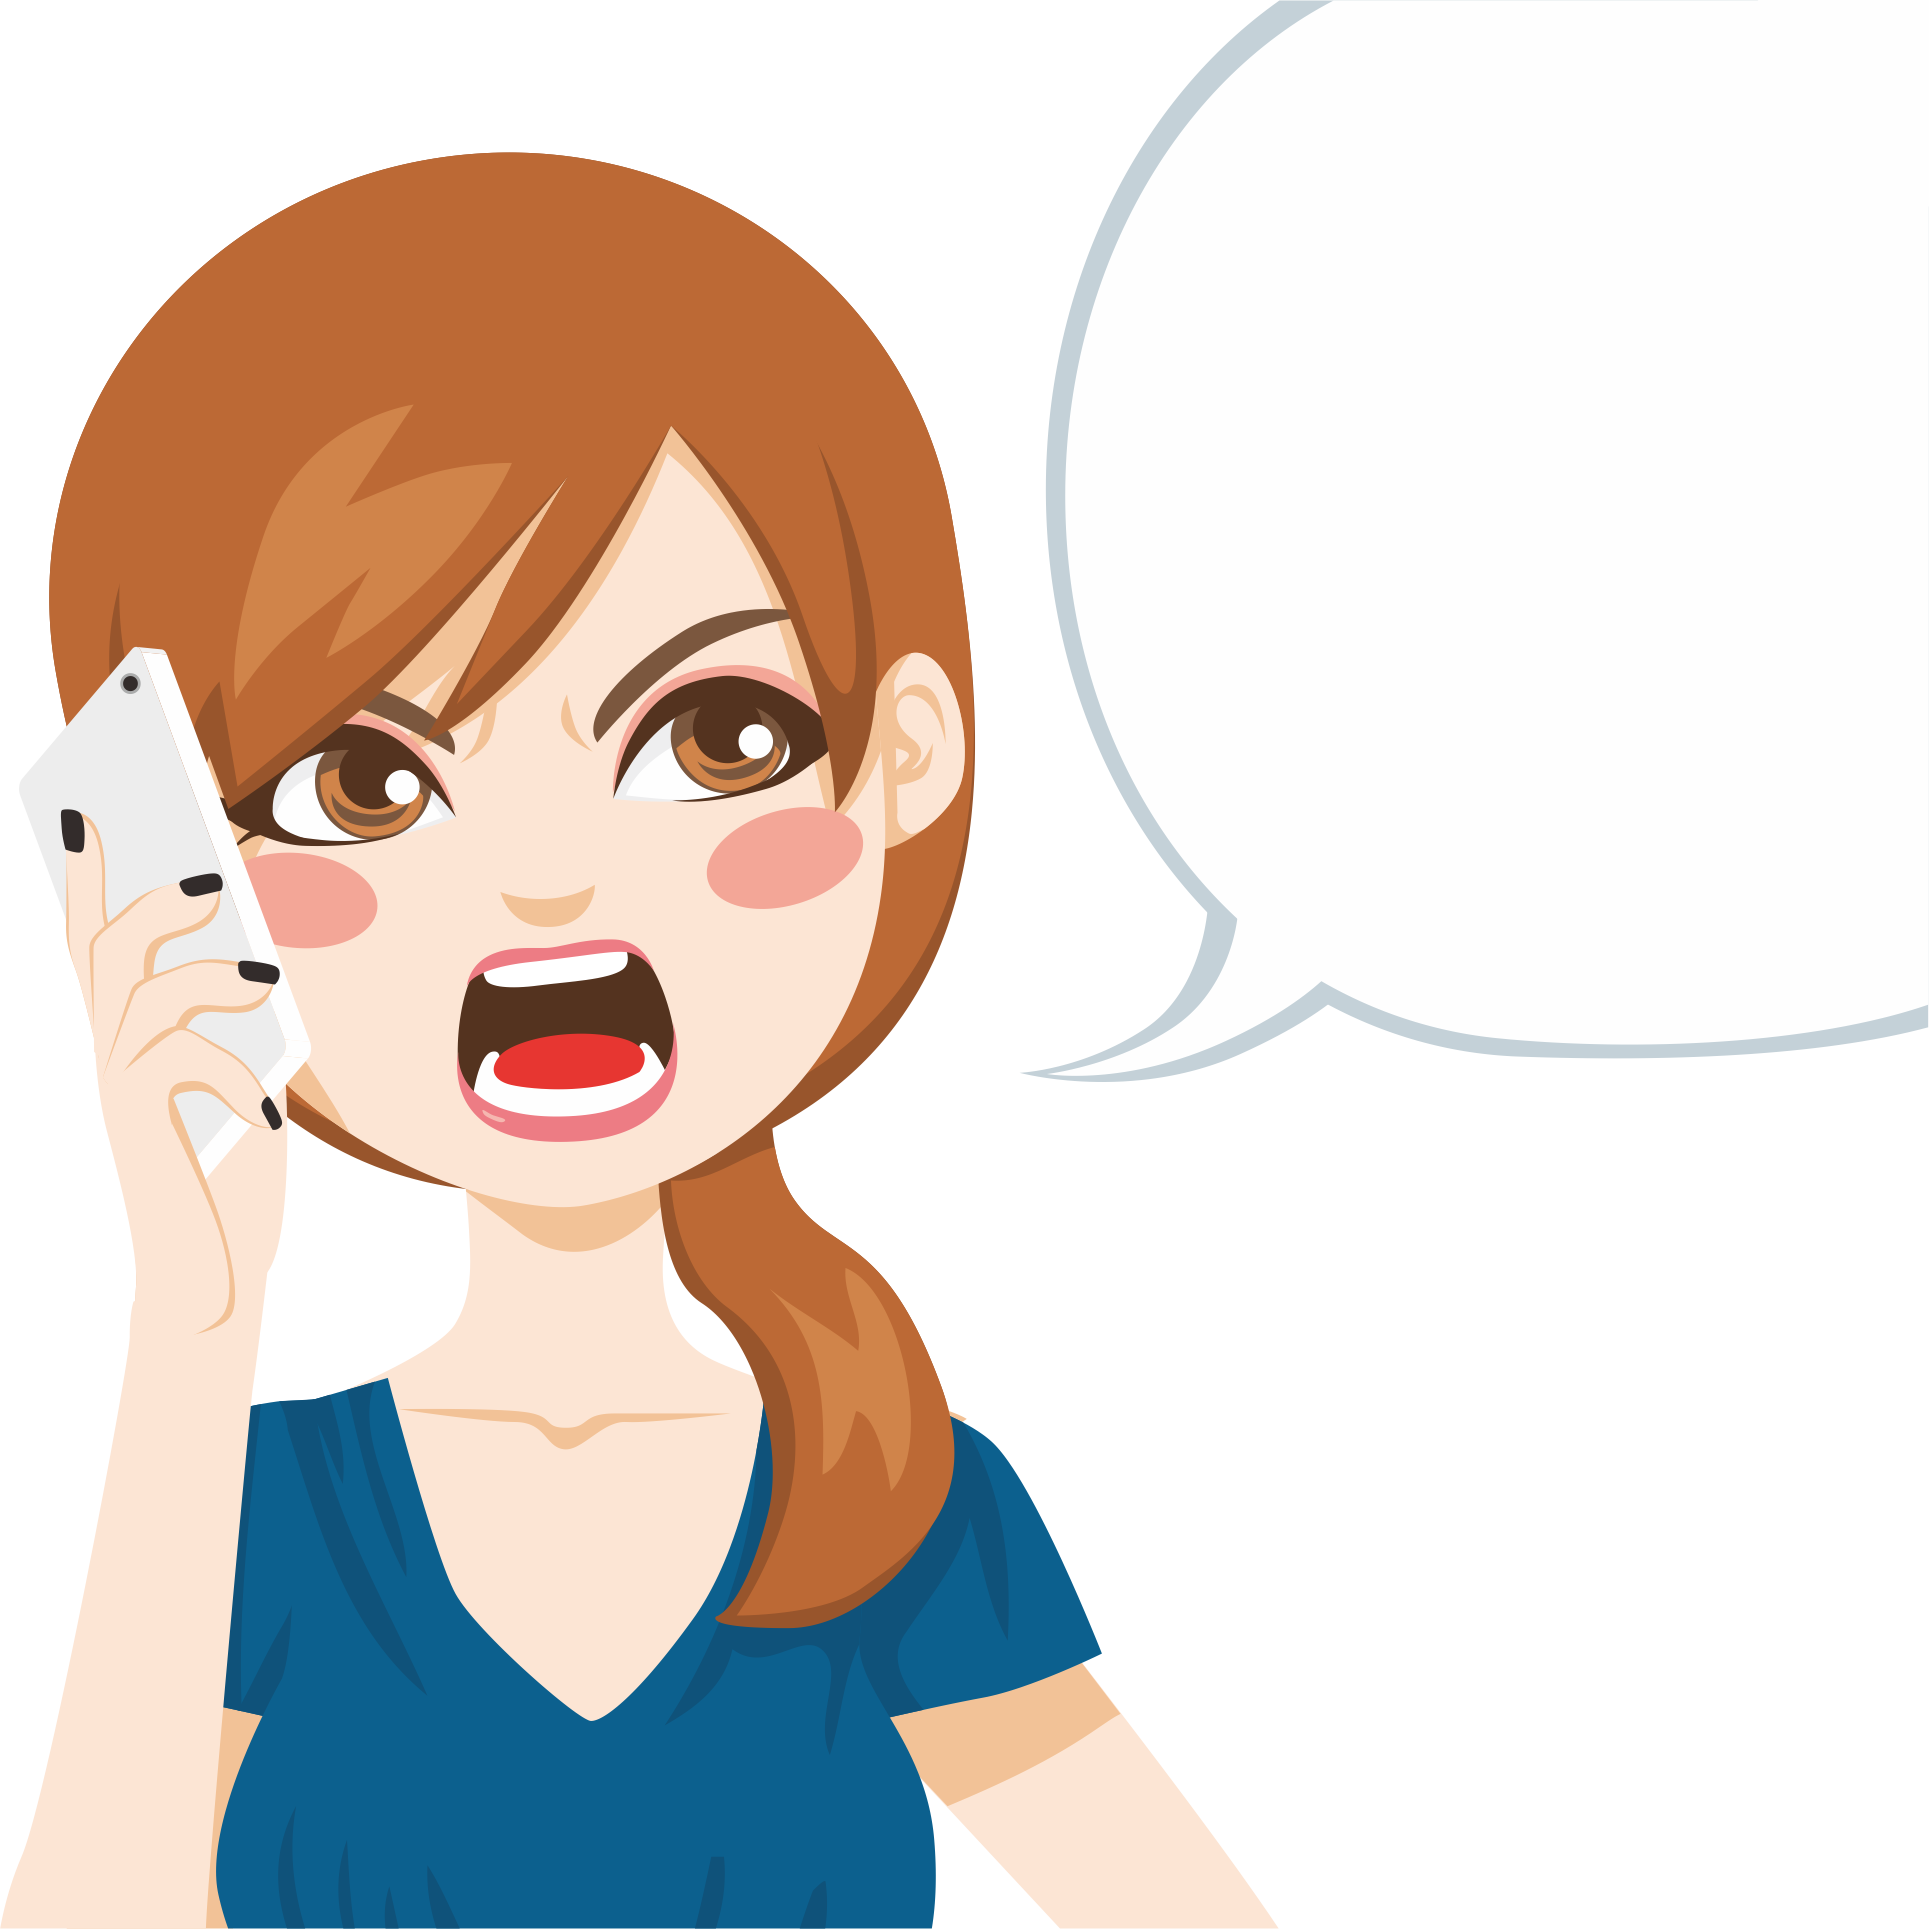 Skin clipart illustration. Cartoon telephone call royalty